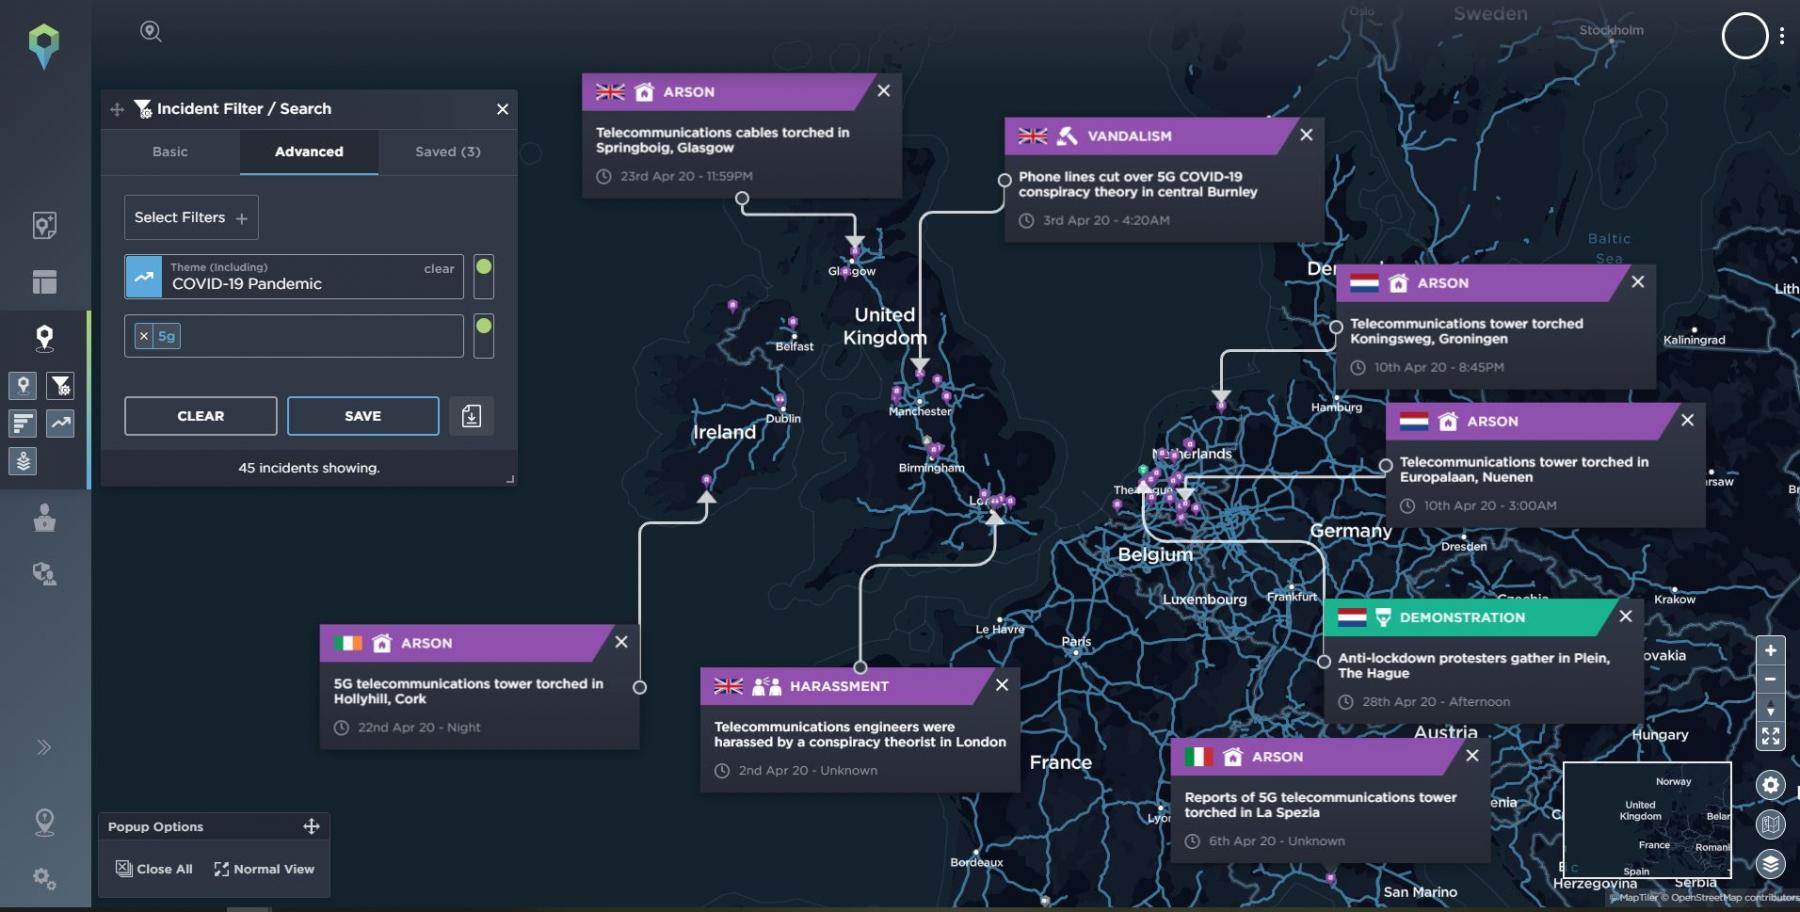 Map highlighting a selection of incidents that show a rise in attacks against 5G masts amidst the conspiracy theory regarding COVID-19